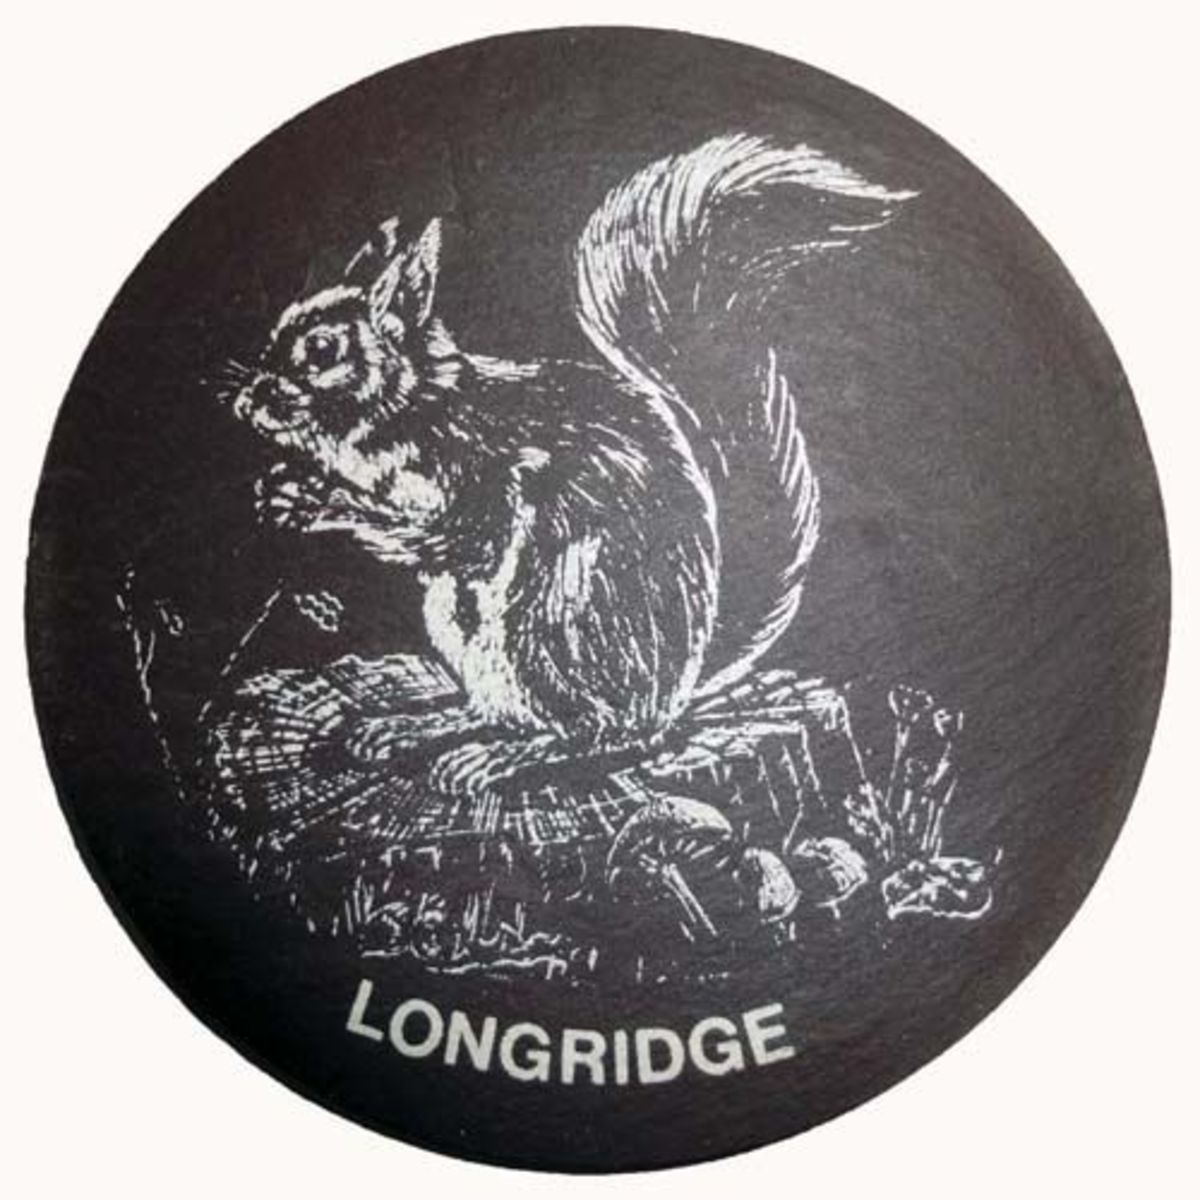 Slate coaster of Squirrel in Longridge, Lancashire, England.